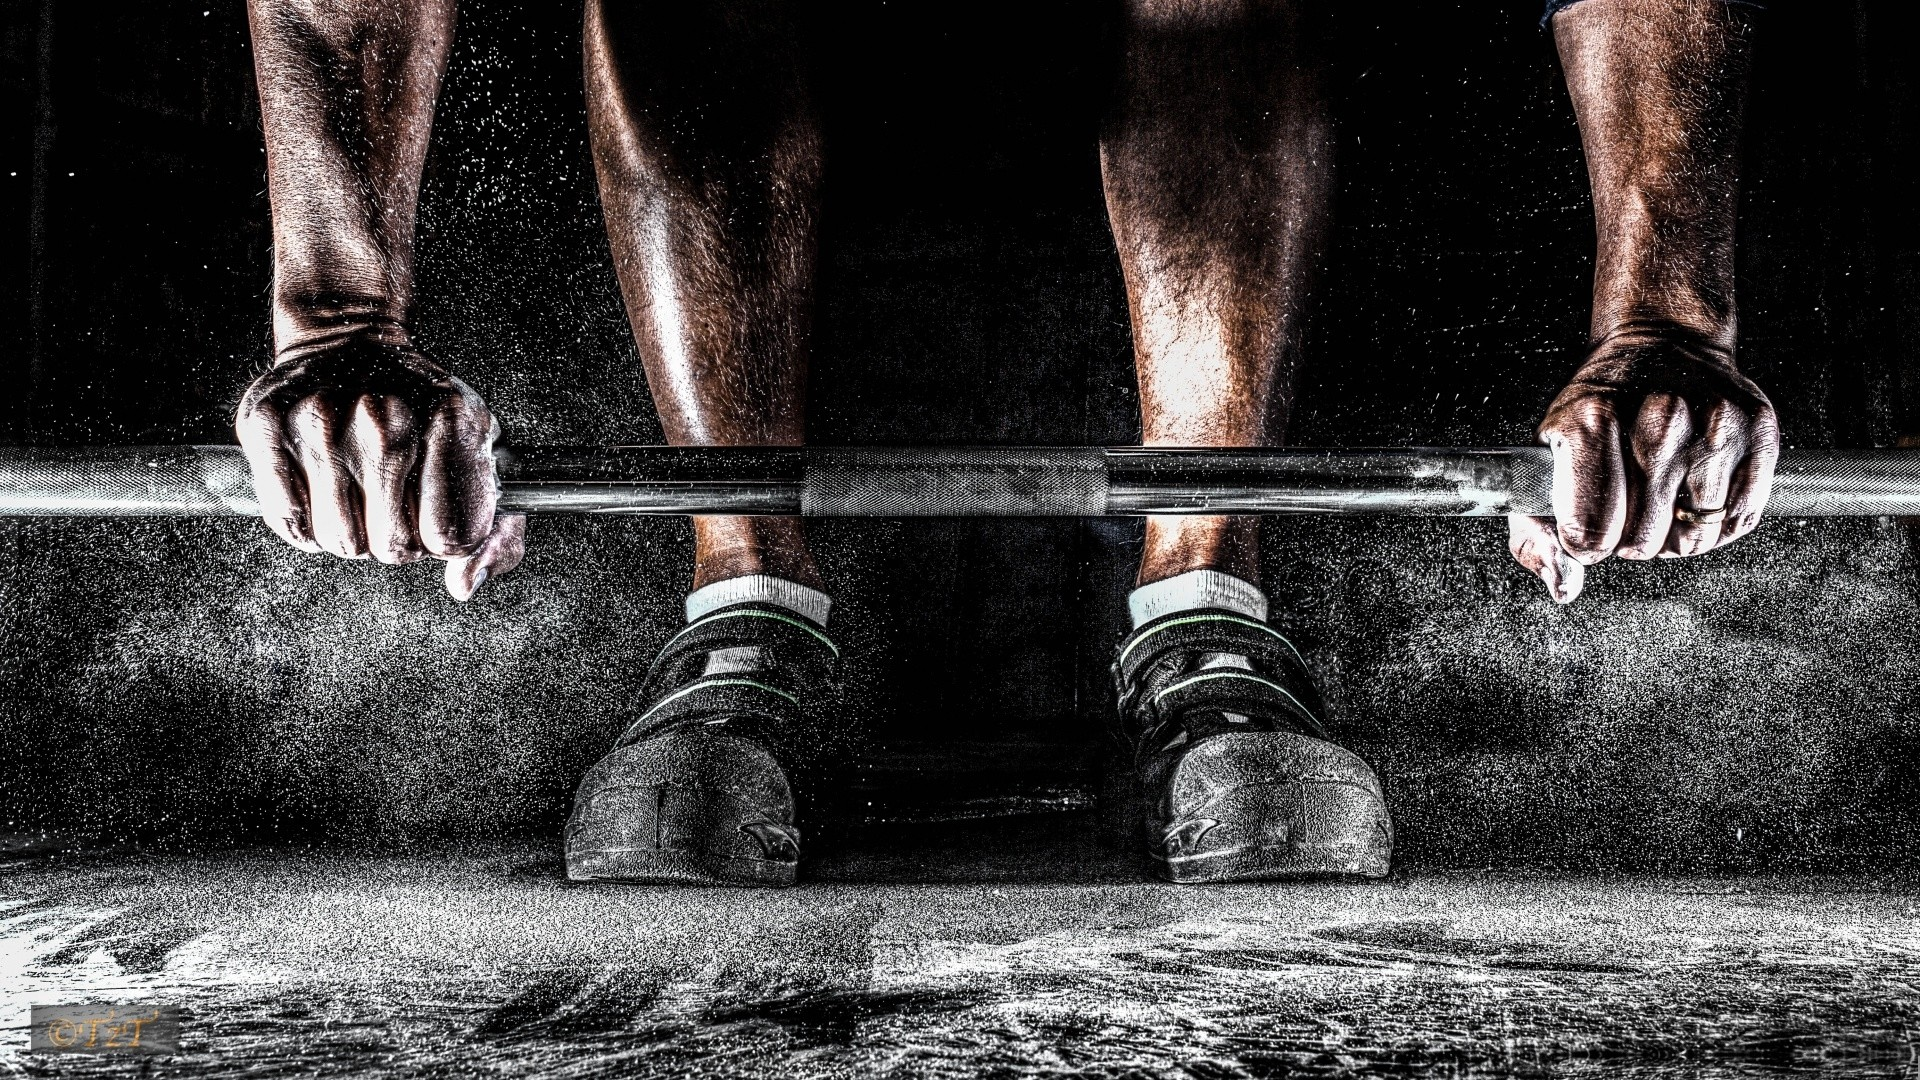 1920x1080 Barbell on the floor, lifting - HD wallpaper download. Wallpapers .